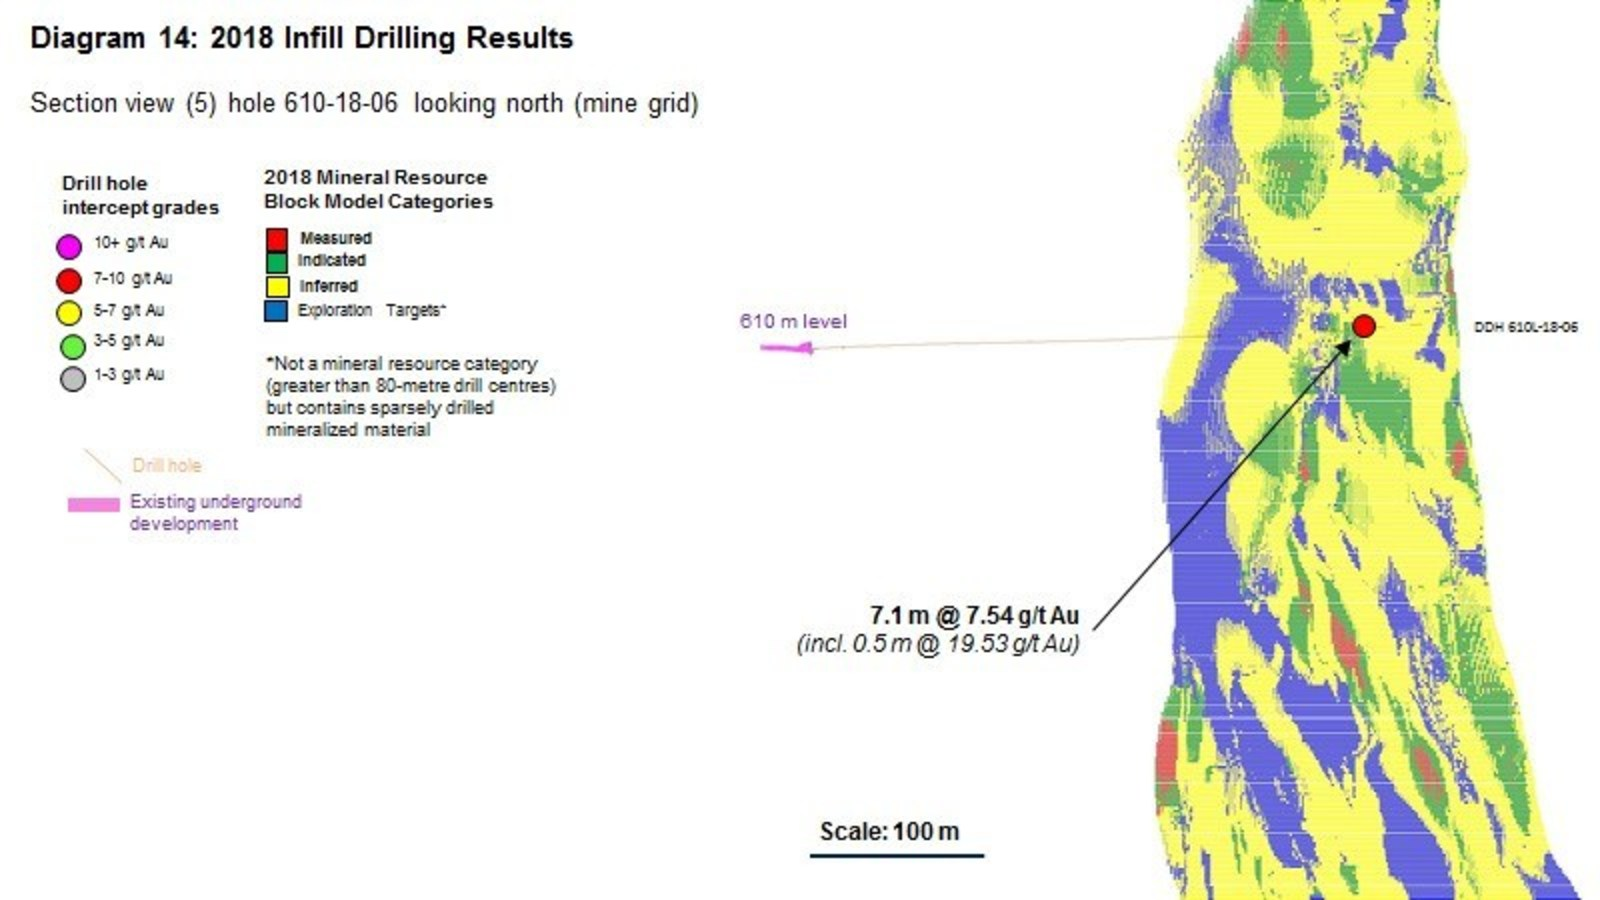 Diagram 14 : 2018 Infill Drilling Results